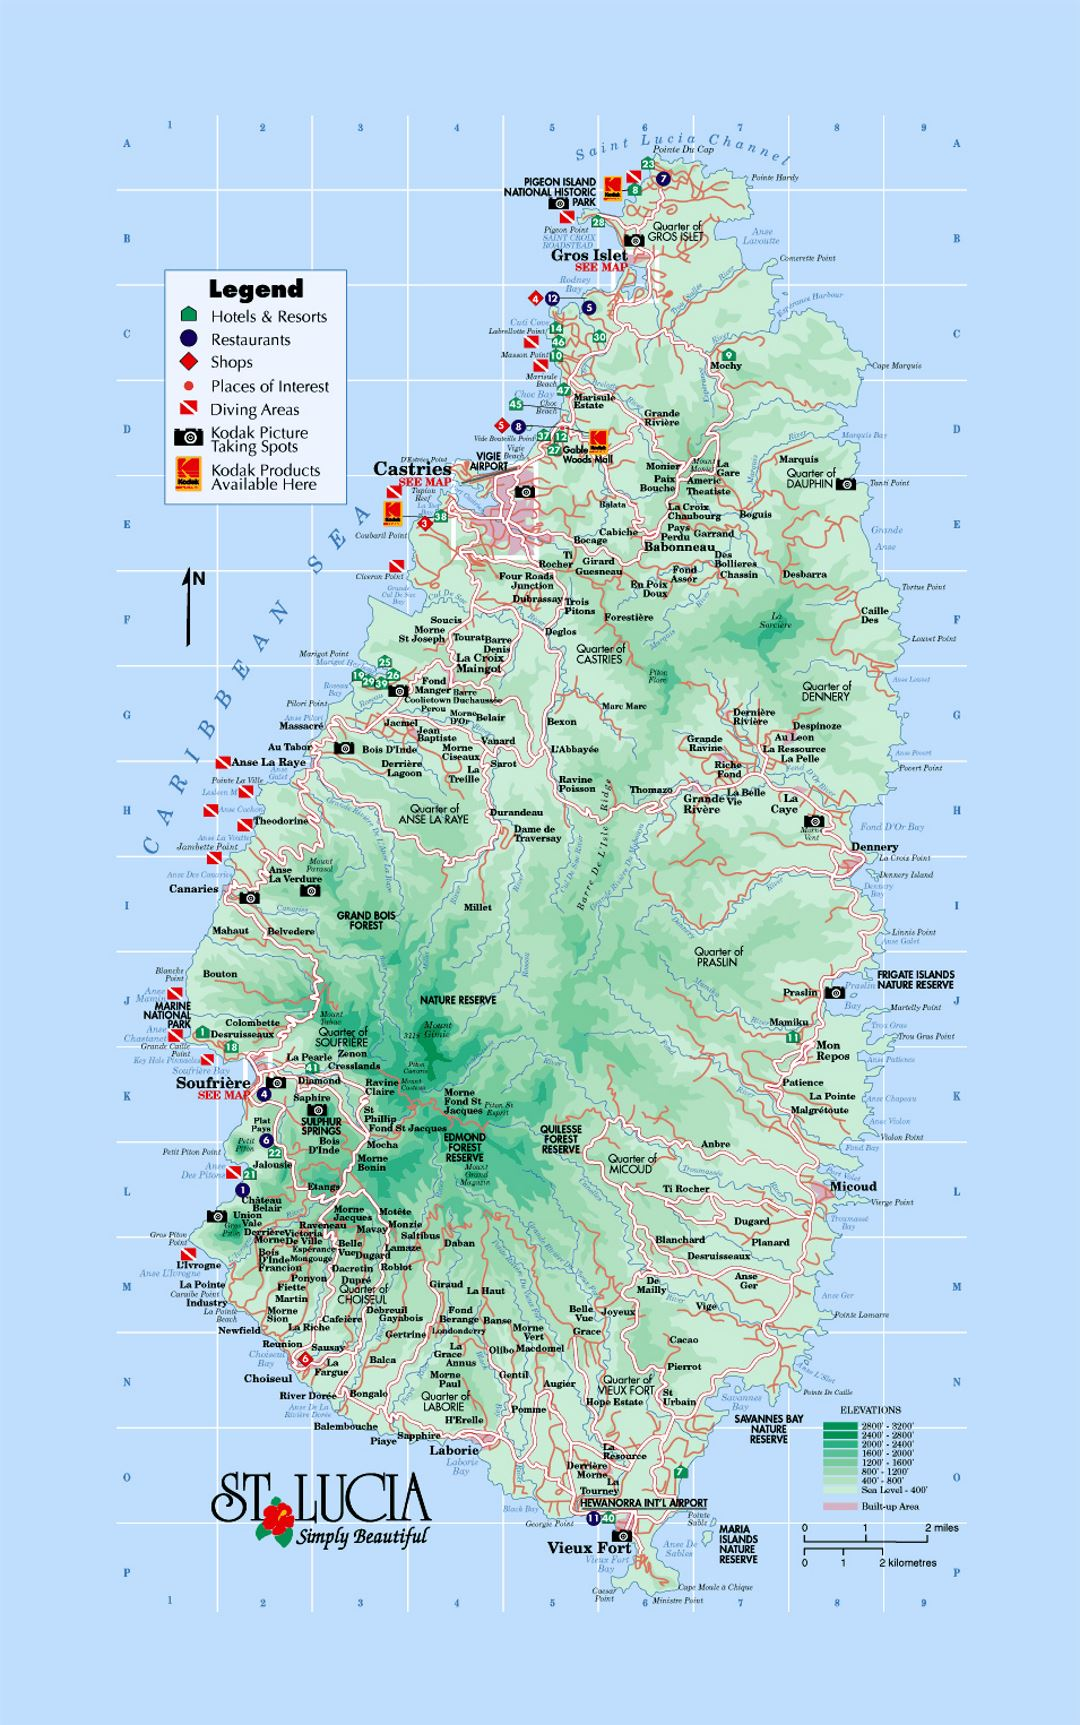 Detailed tourist and elevation map of Saint Lucia with roads cities